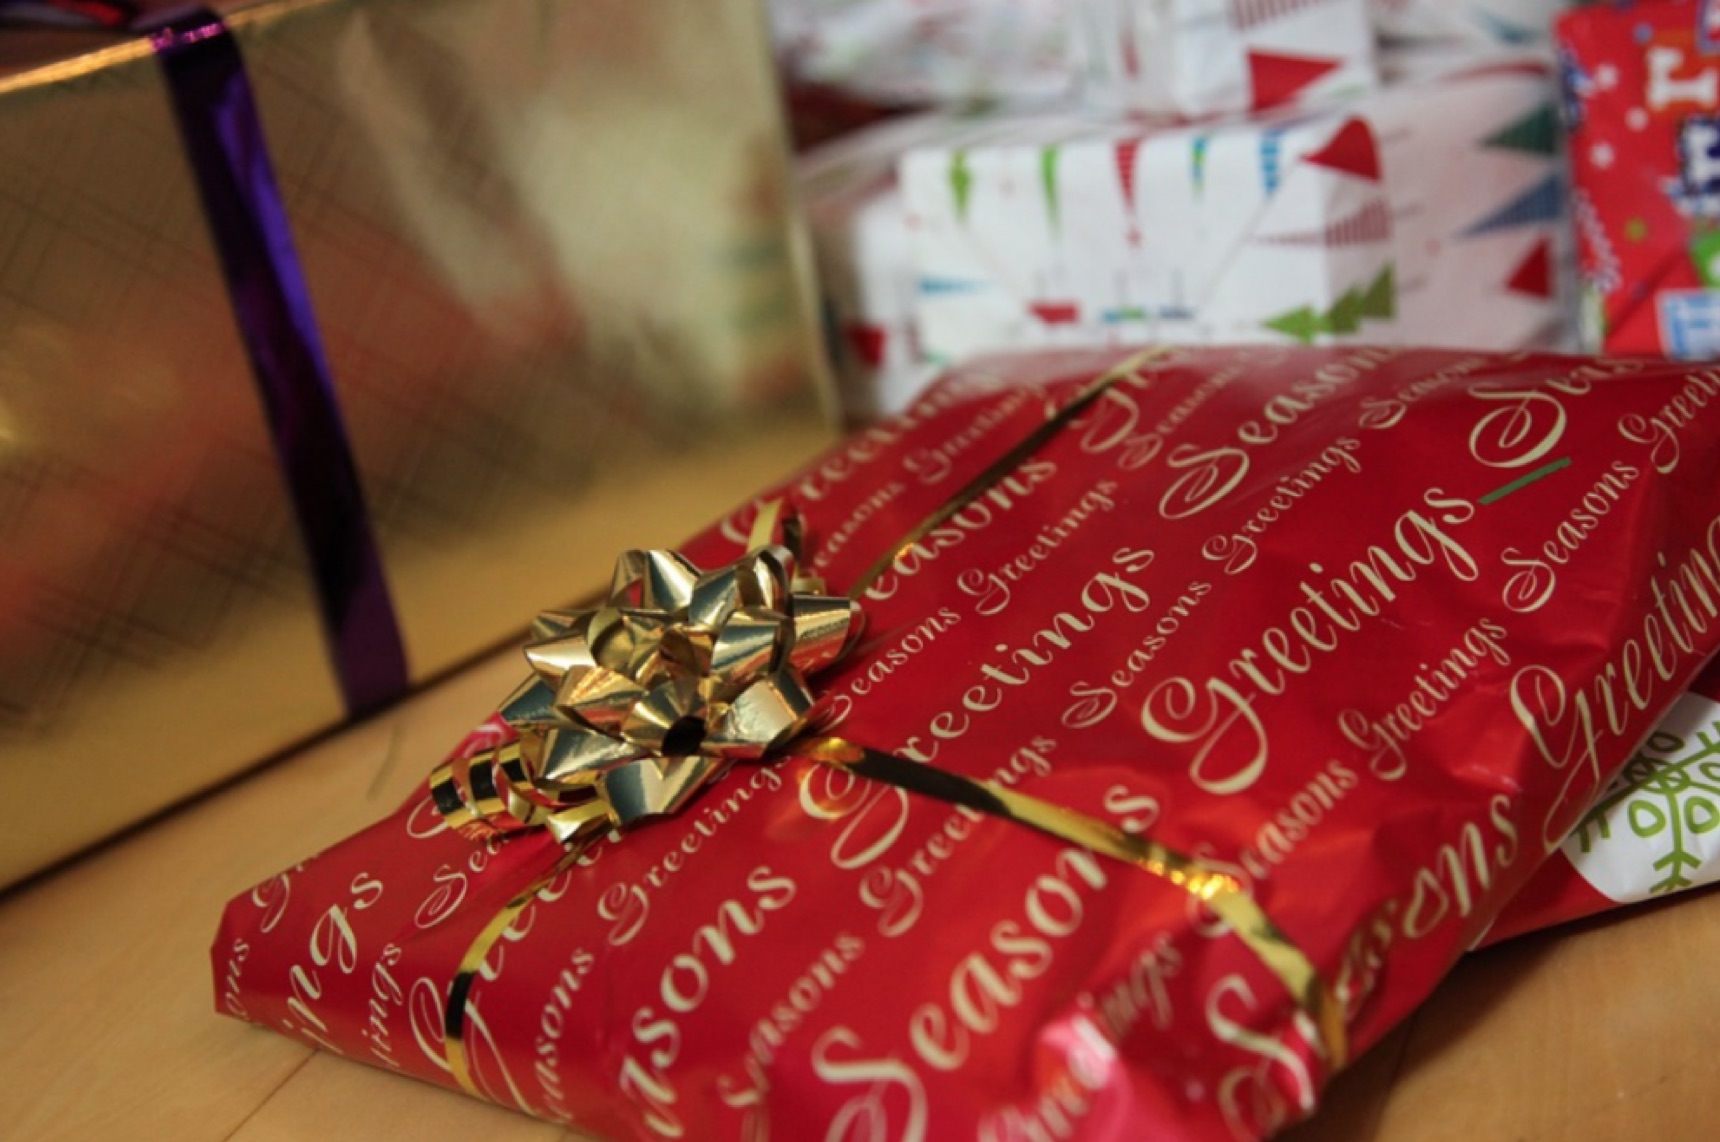 Gifts during the holiday season